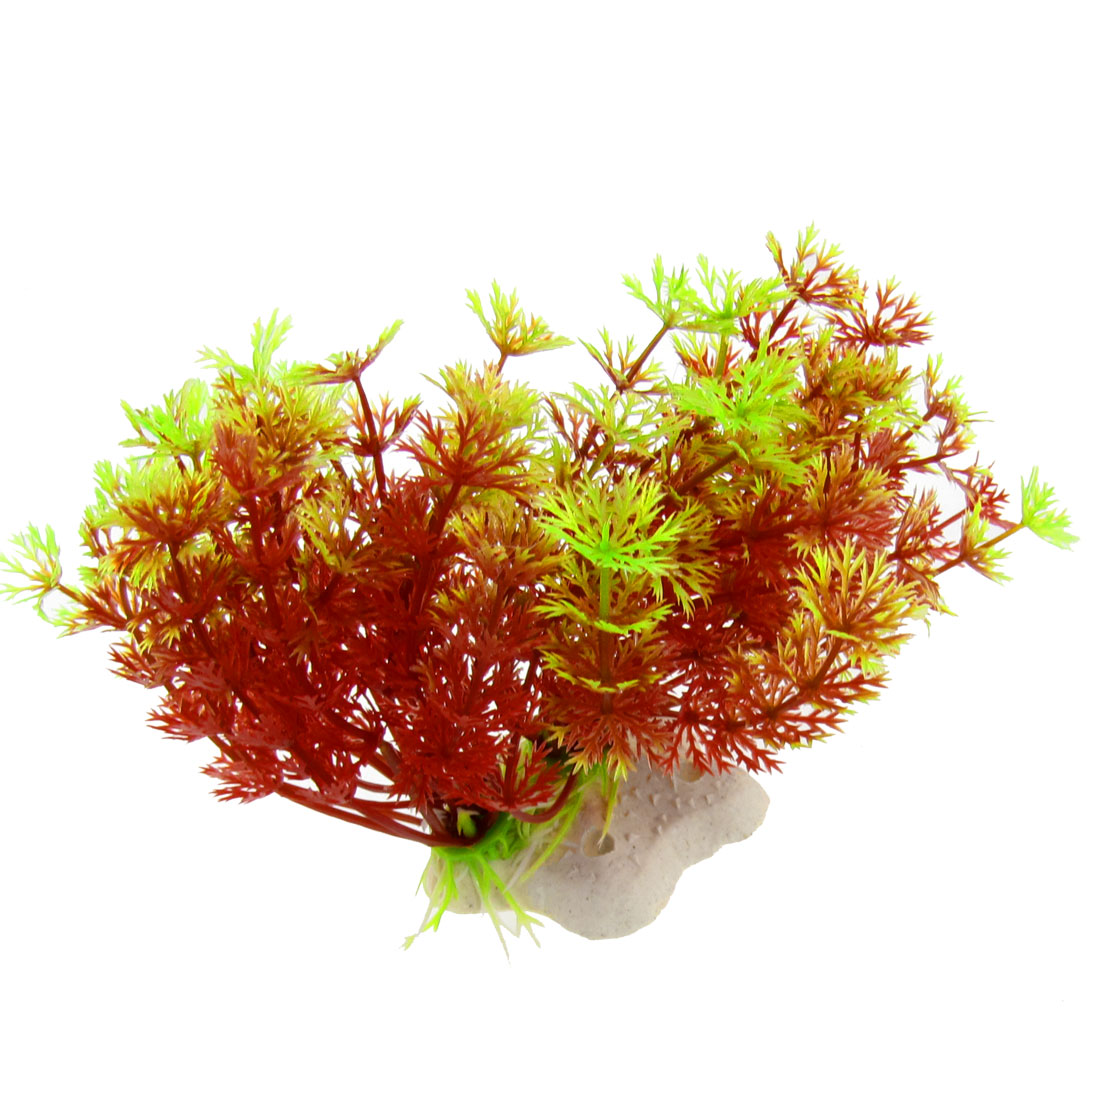 "Aquarium Fish Tank Red Green Plastic Plant Ornament 4.3"" w Five Pointed Star Base"